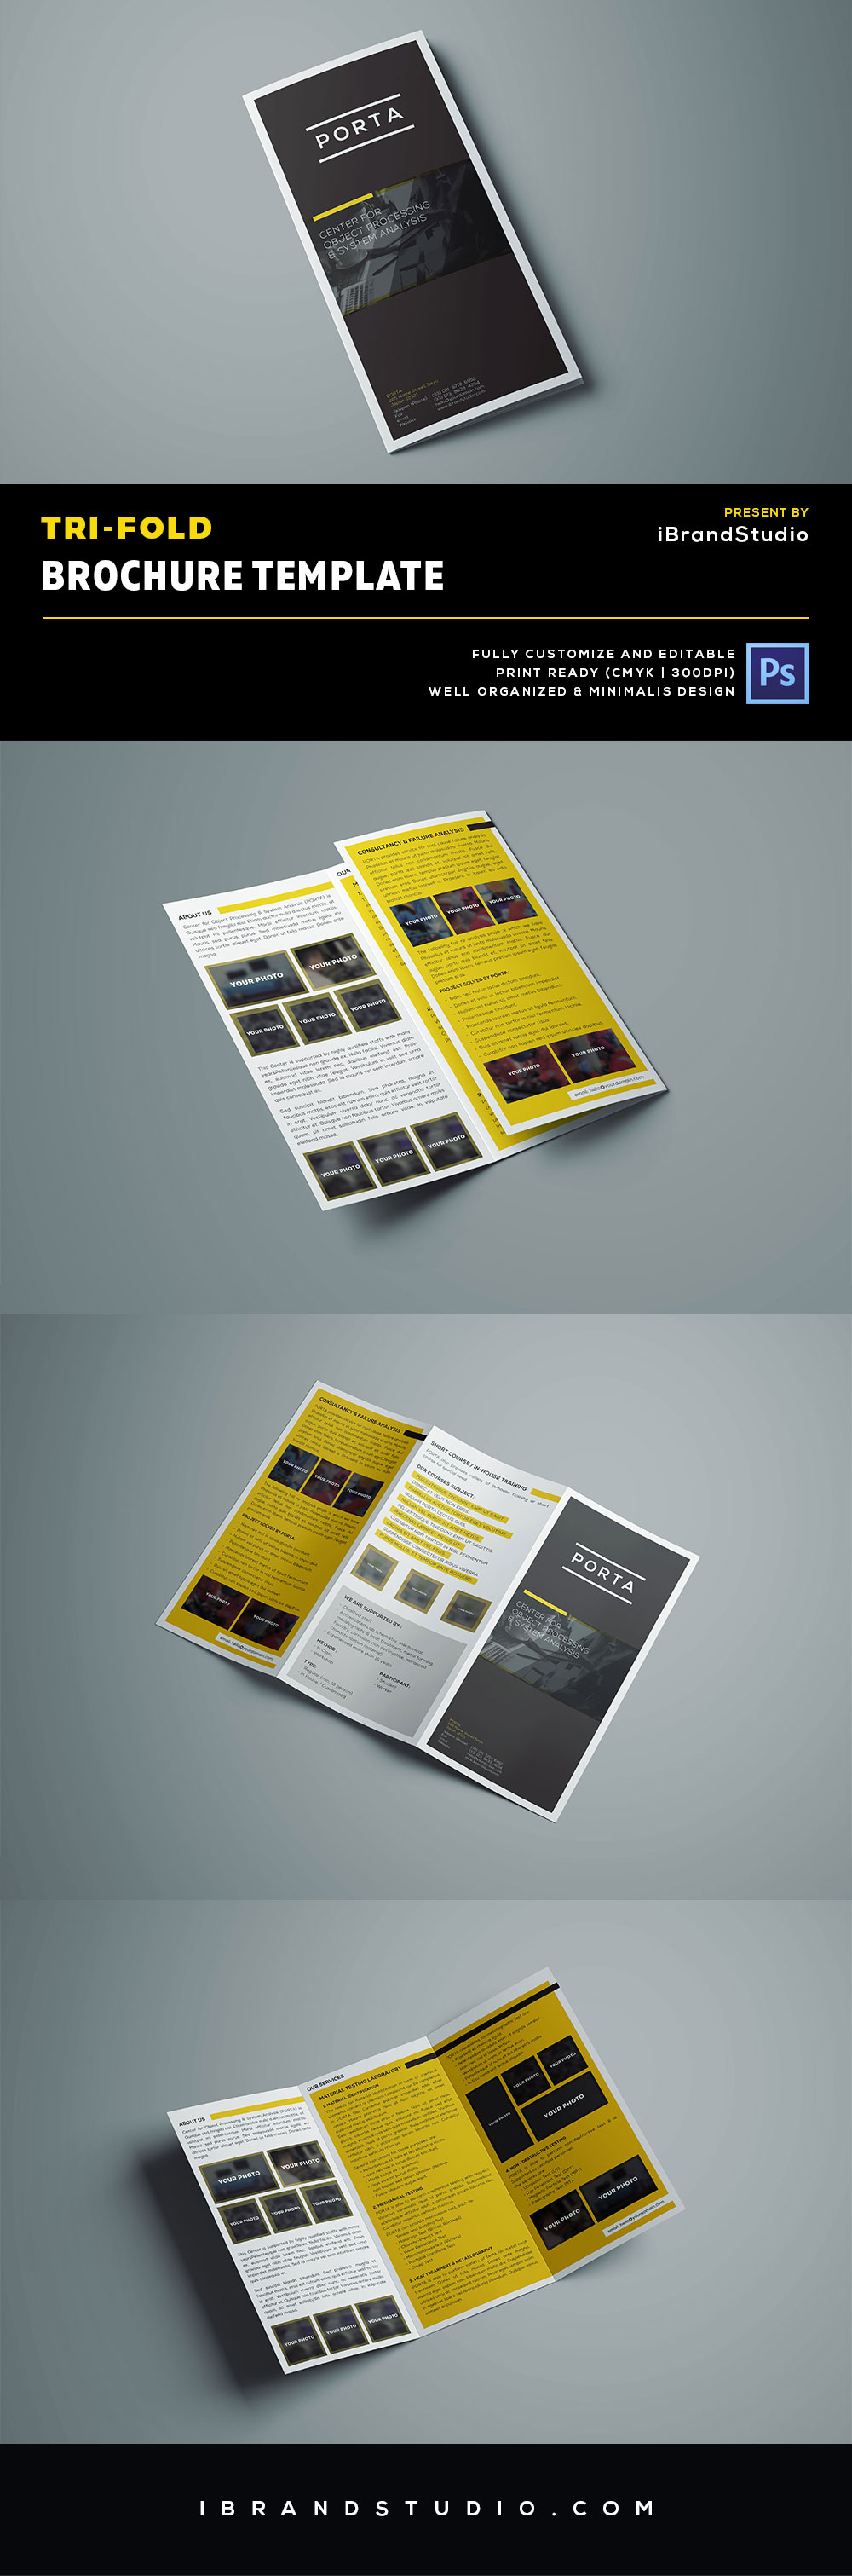 Free tri fold brochure template psd ideal for event or for Tri fold brochure psd template